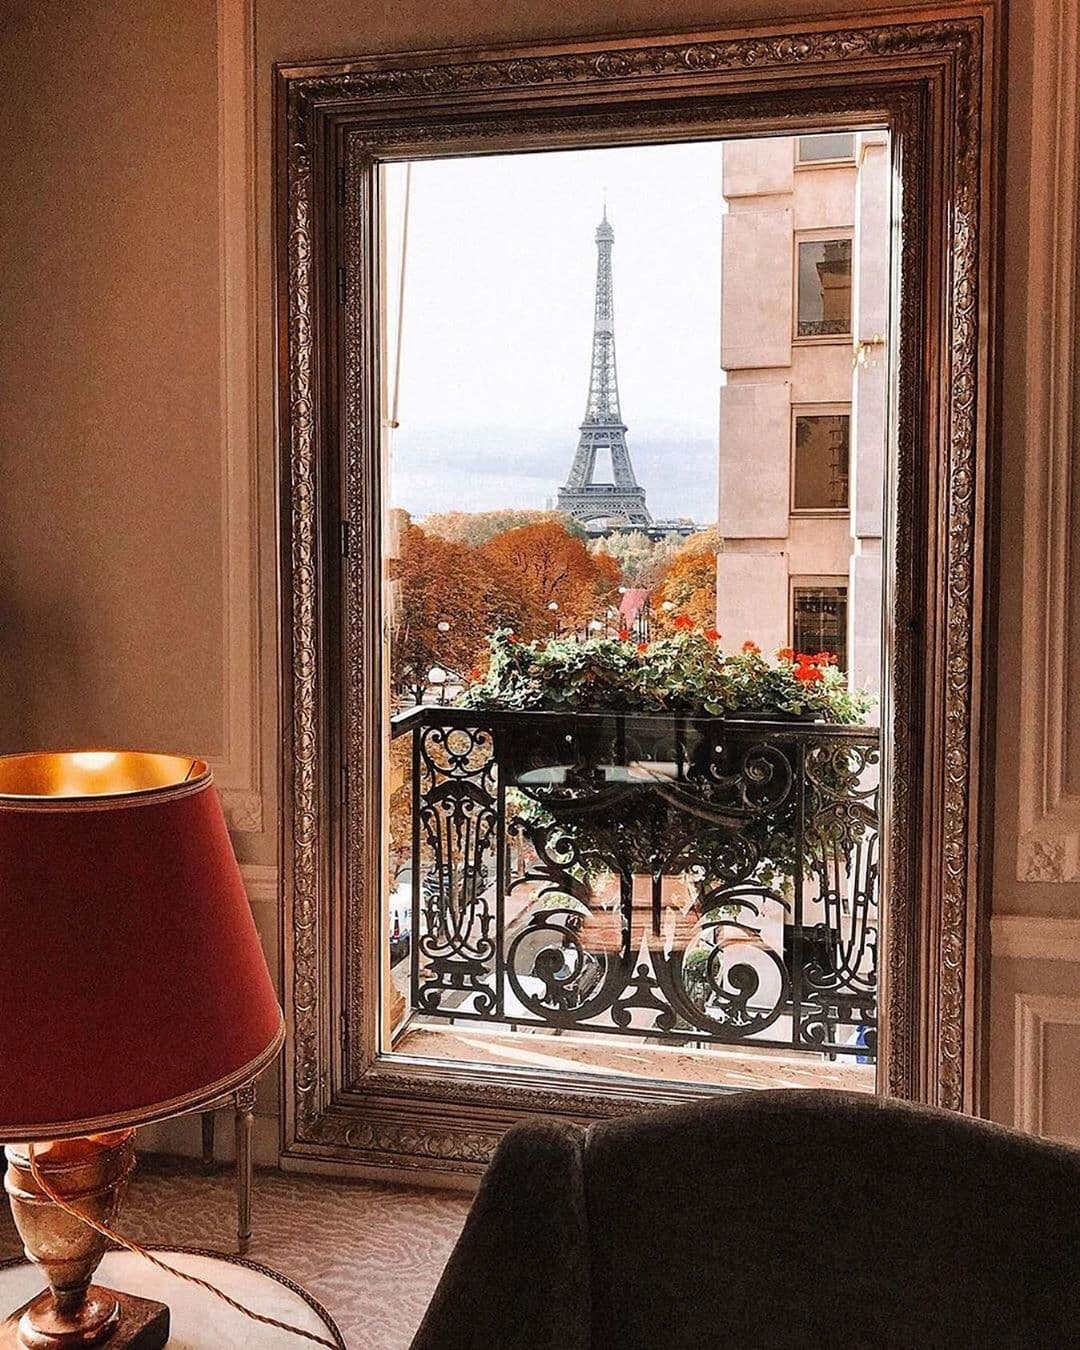 View out a hotel room window at the Plaza Athenee in Paris, the Eiffel Tower in the background